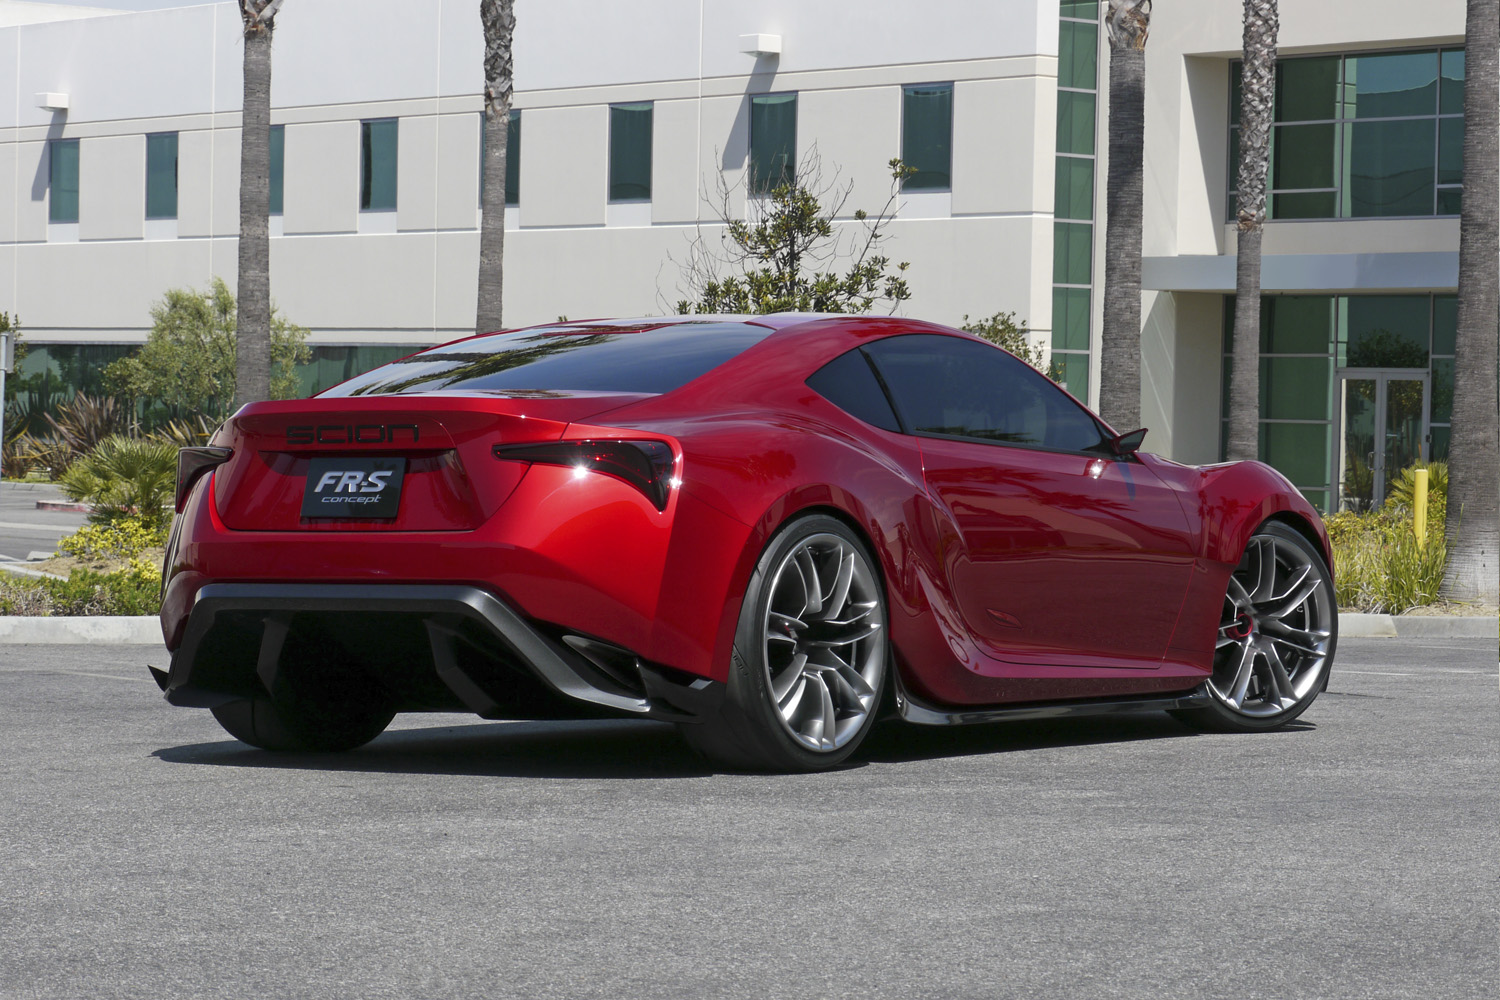 Toyota Ft 1 >> Scion FR-S Concept – Five Axis